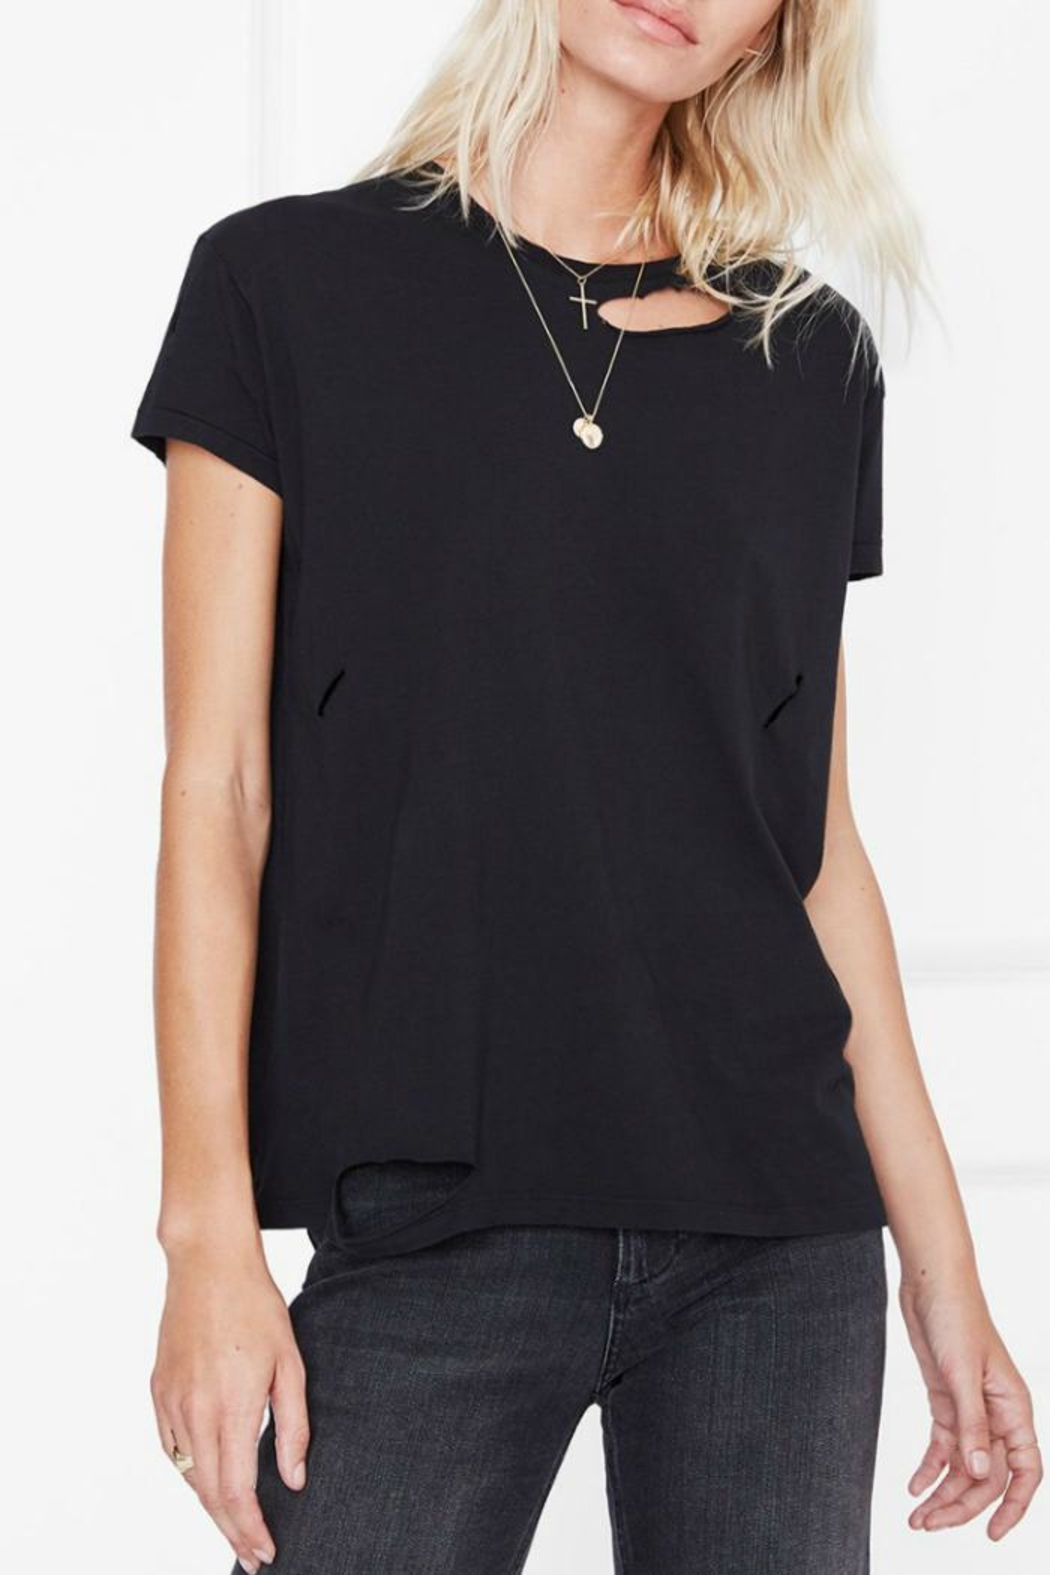 Anine Bing Distressed T-Shirt - Front Cropped Image